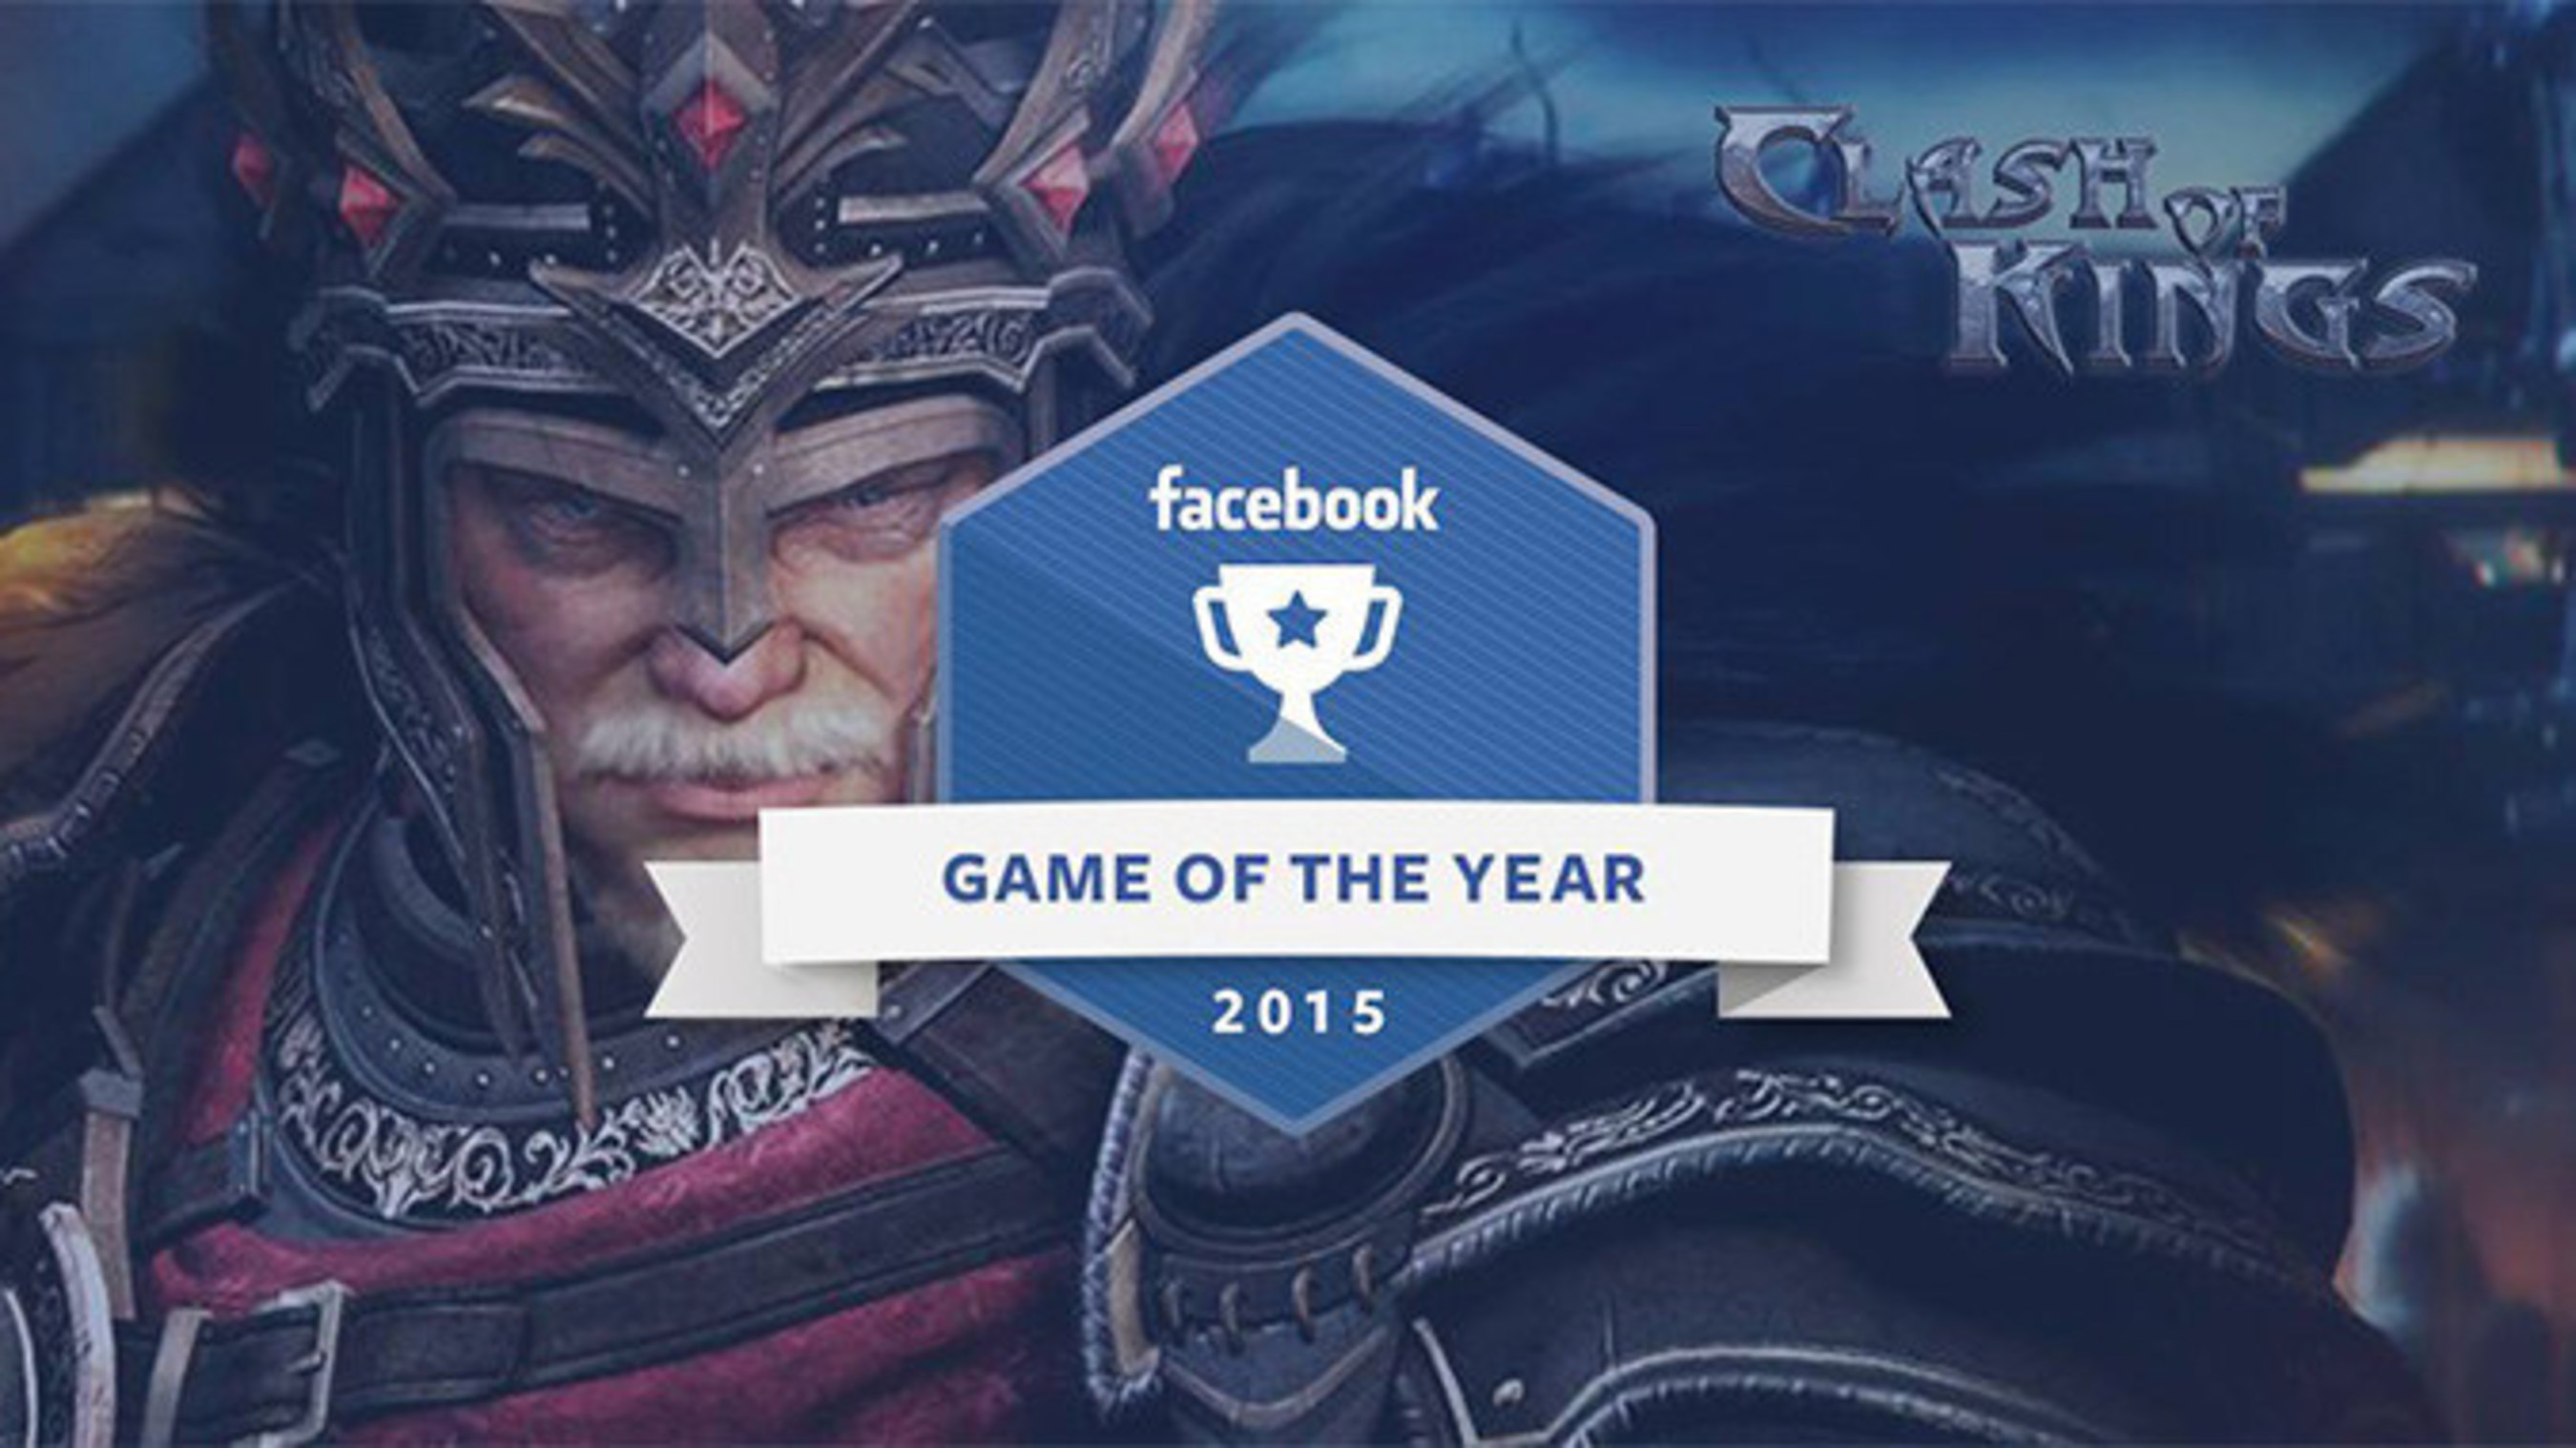 Facebook Names Clash of Kings its 2015 Game of the Year